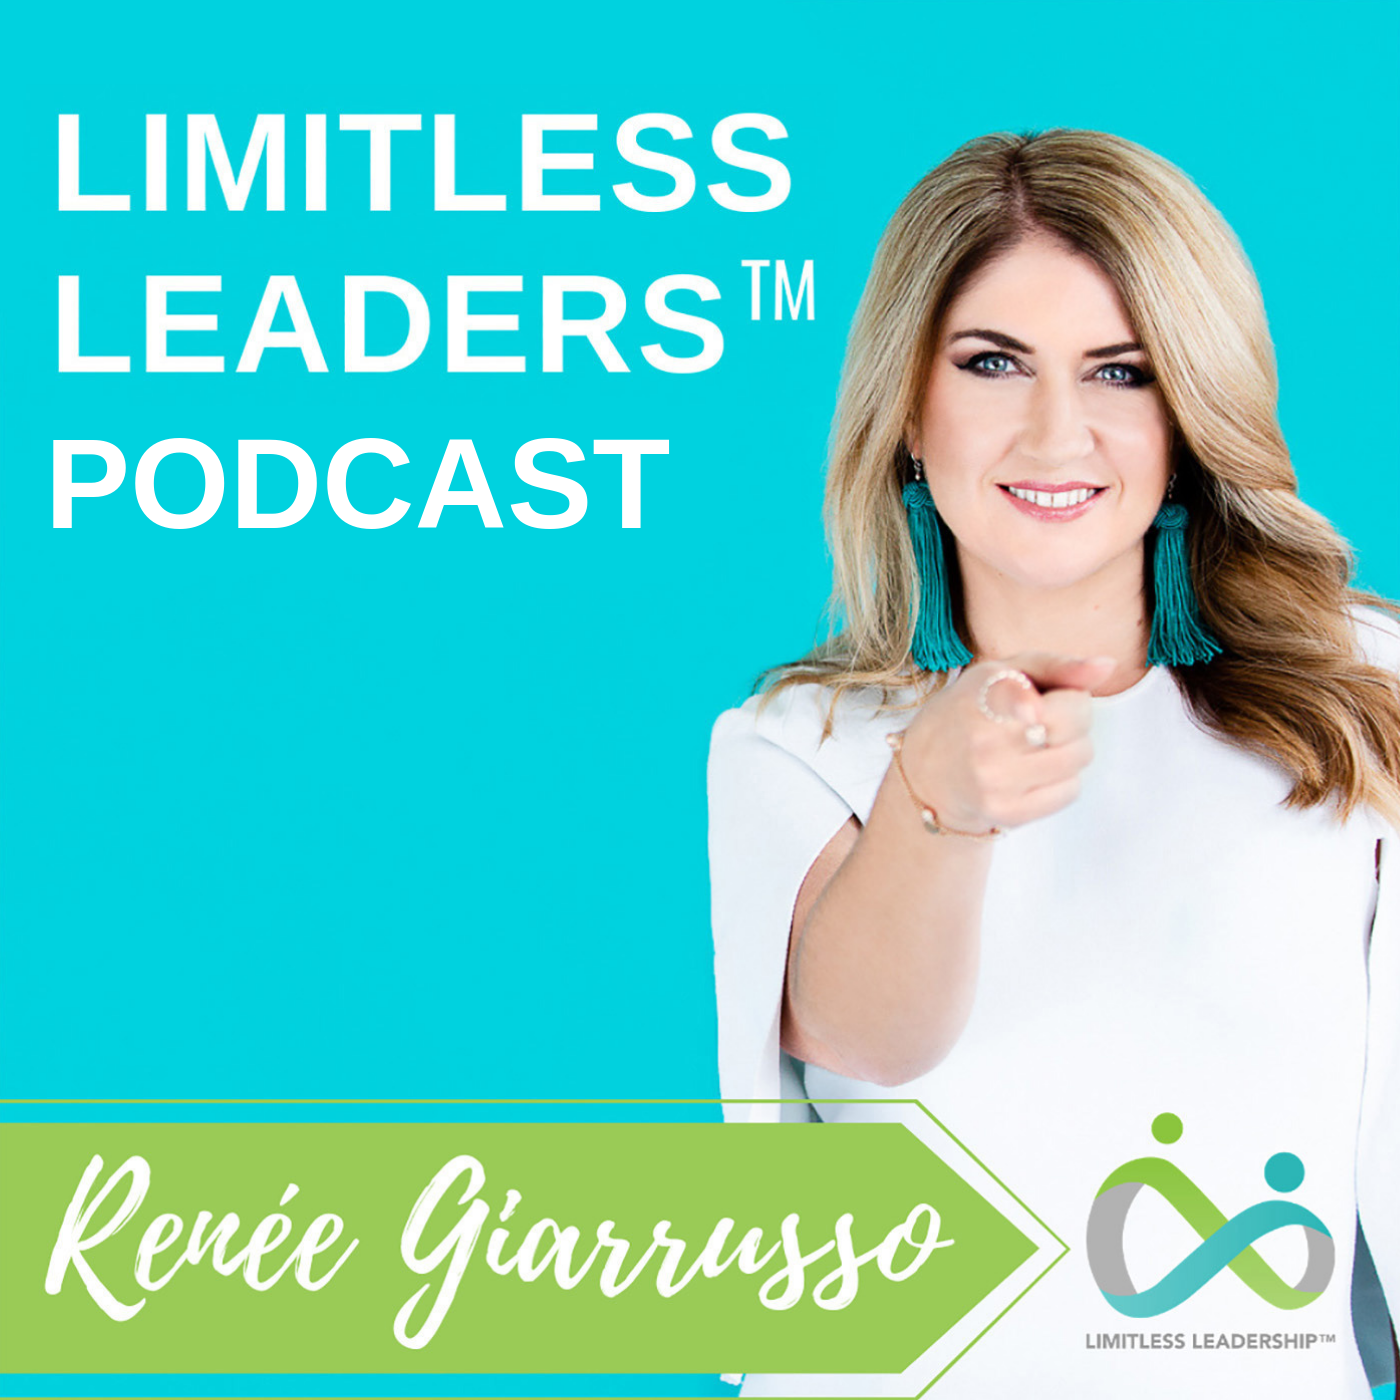 Limitless Leaders™ Podcast